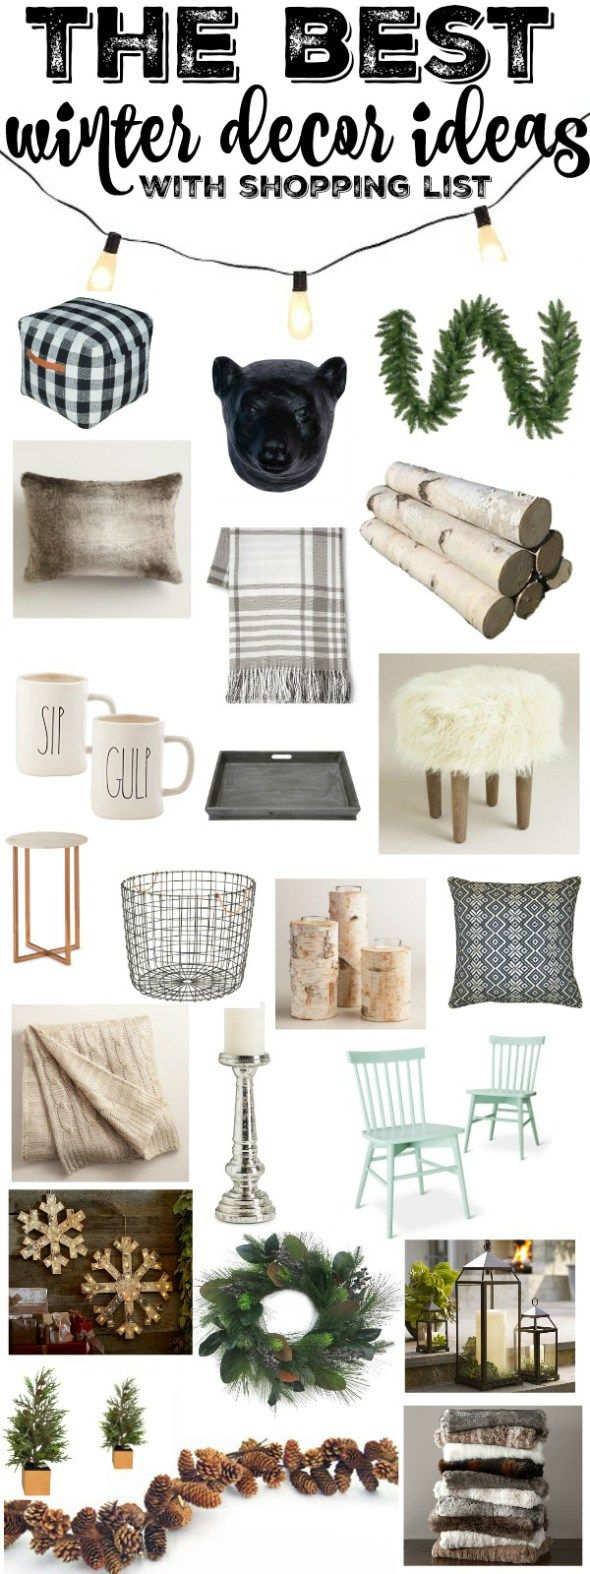 Decorative Objects Living Room: Favorite Rustic Winter Decor